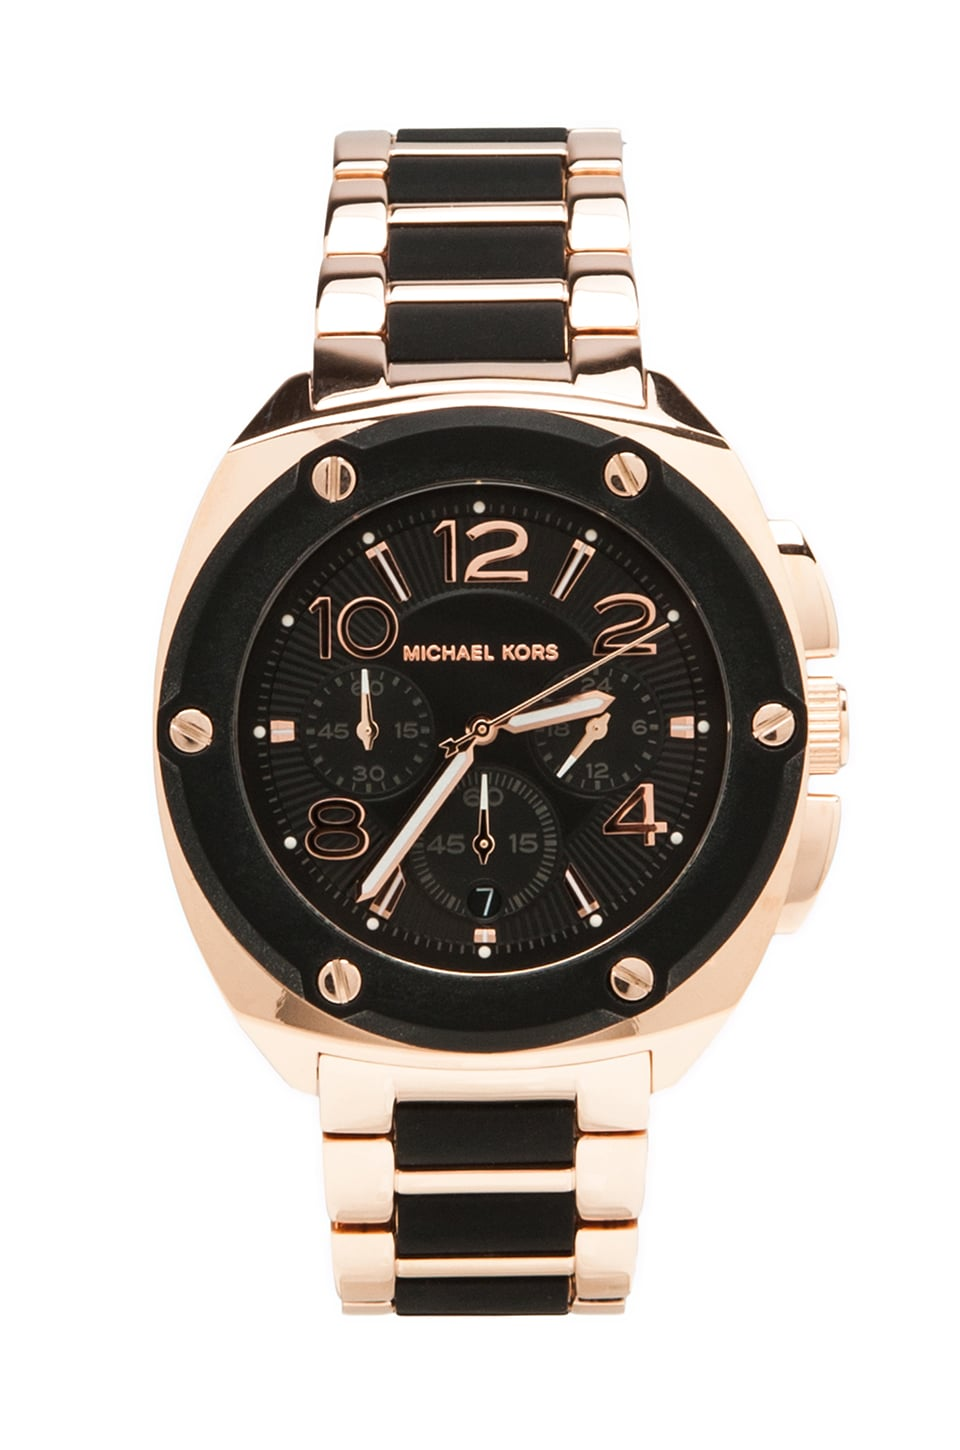 Michael Kors Tribeca Chronograph Watch in Black/Rosegold